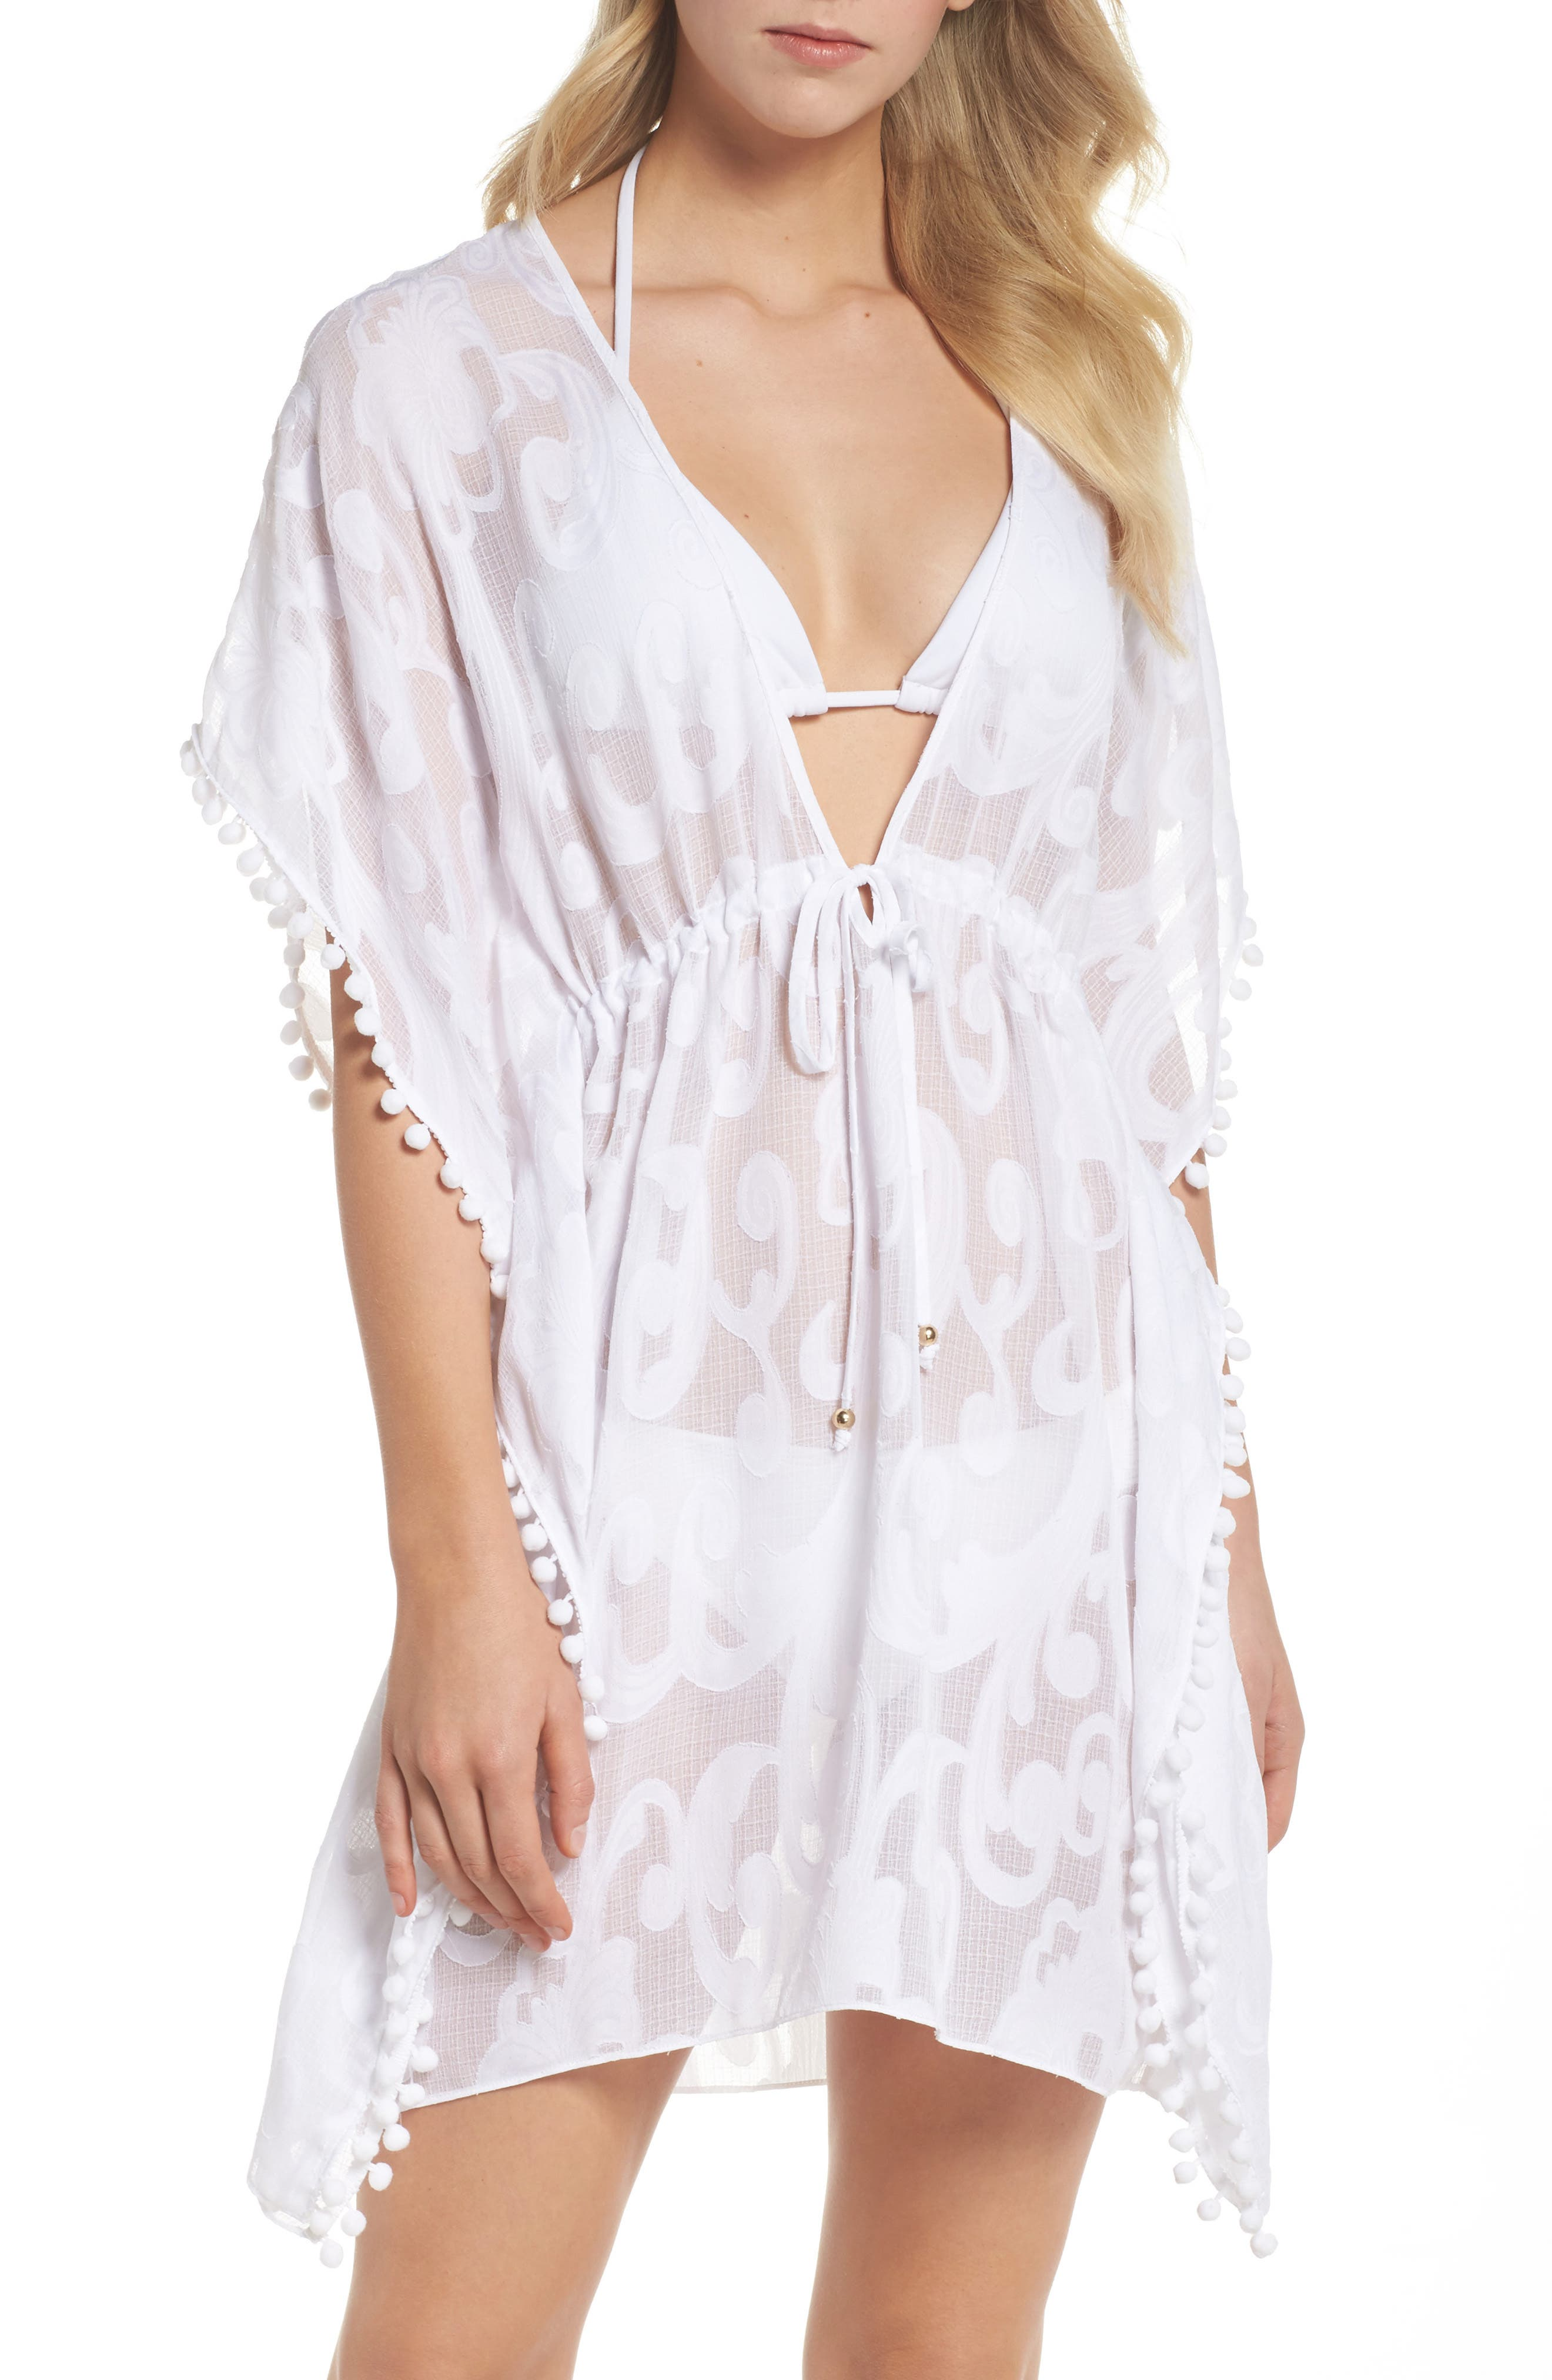 Gardenia Cover-Up,                         Main,                         color, Resort White Poly Crepe Swirl